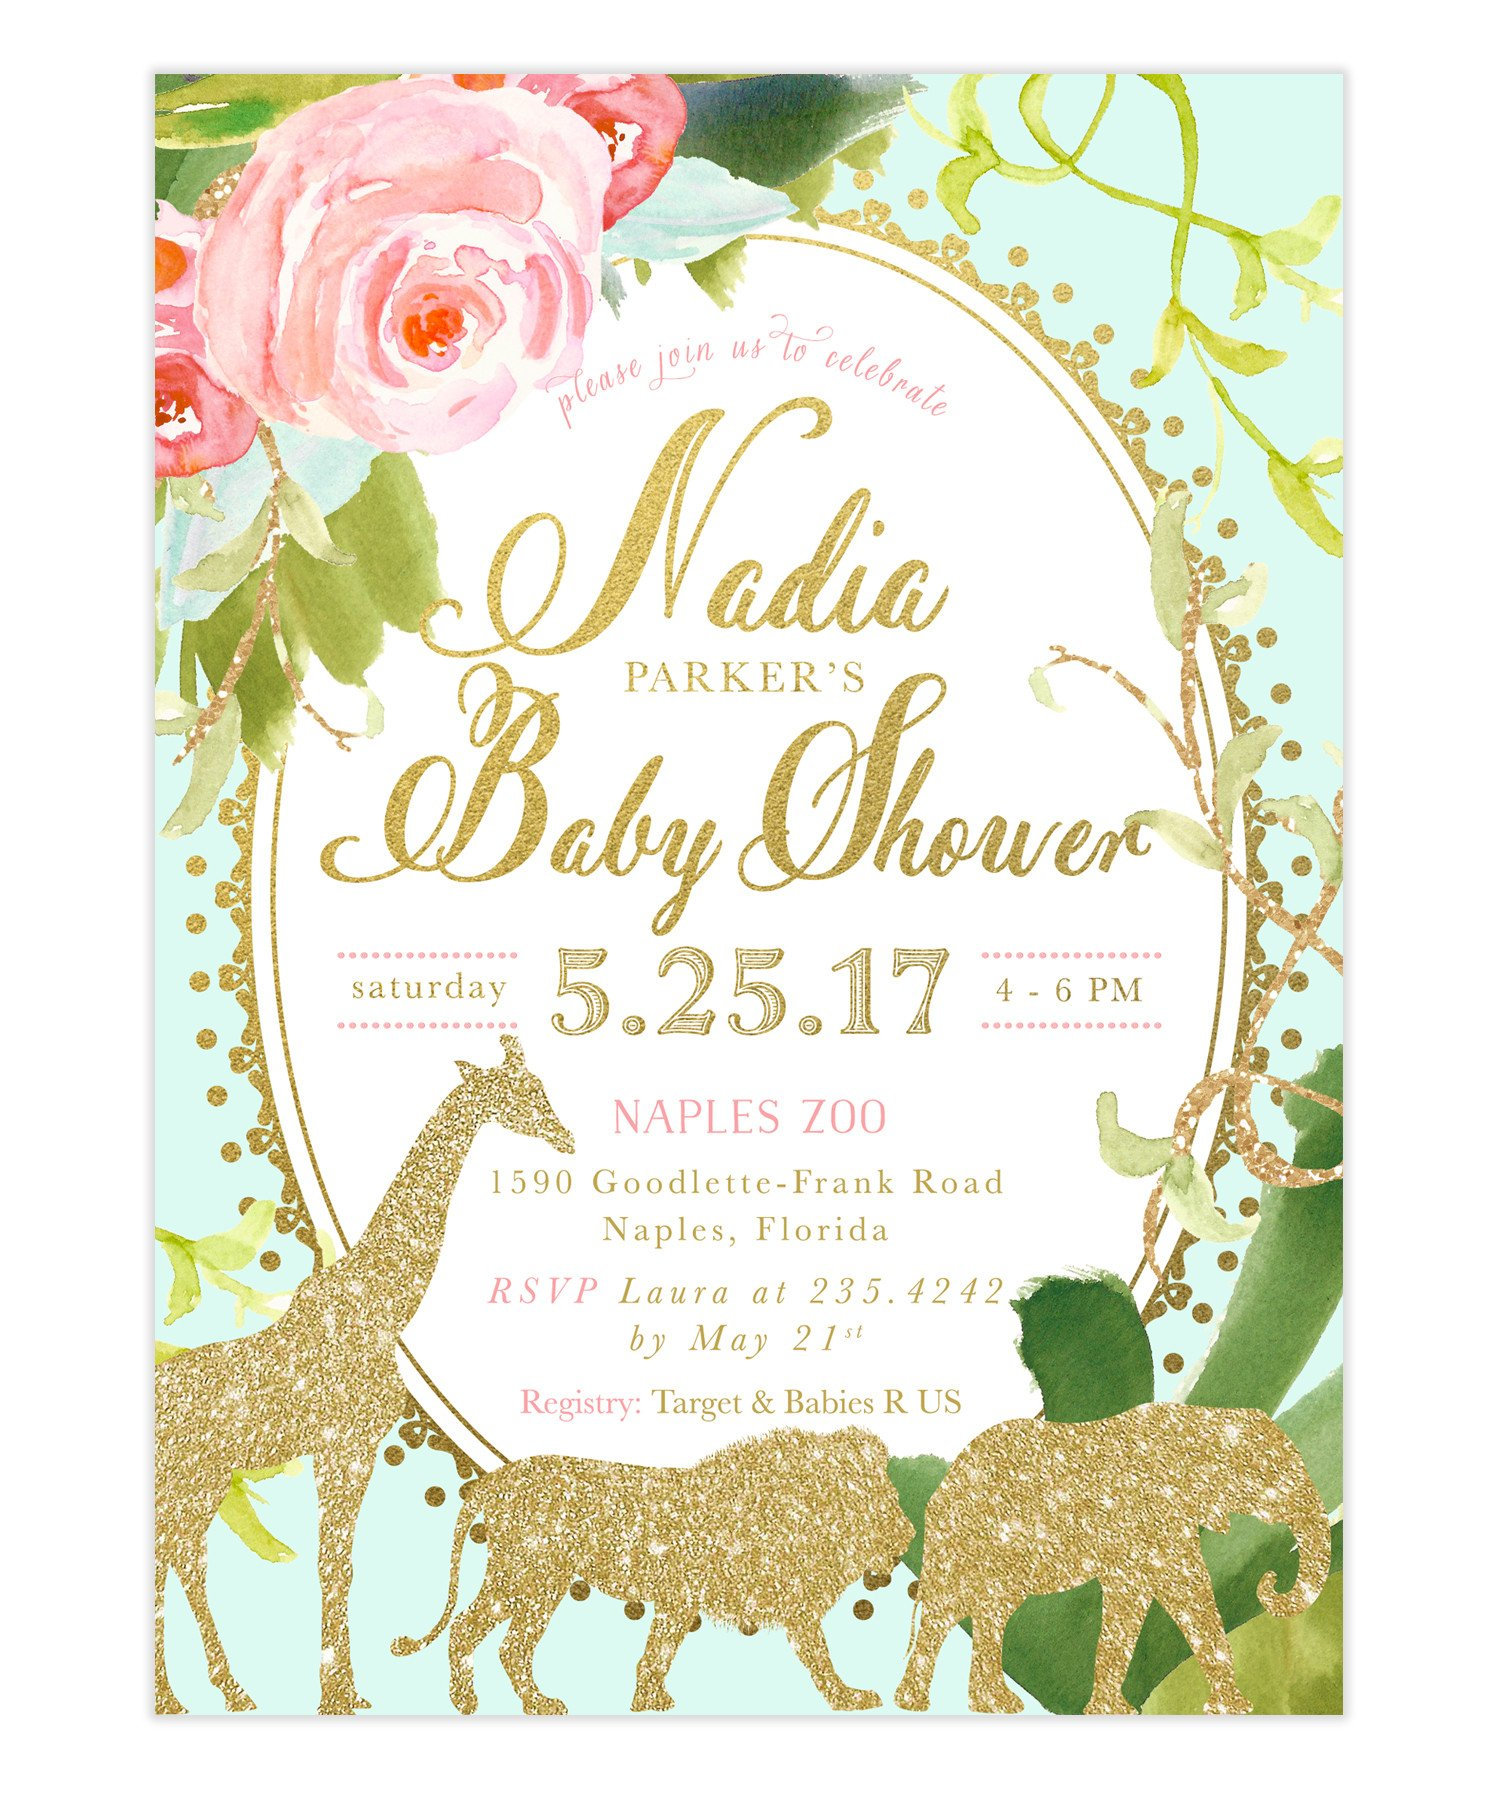 Full Size of Baby Shower:baby Shower Invitations For Boys Homemade Baby Shower Decorations Baby Shower Ideas Nursery Themes For Girls Homemade Baby Shower Decorations Unique Baby Shower Themes Nautical Baby Shower Invitations For Boys Printable Baby Shower Invitations For Girl